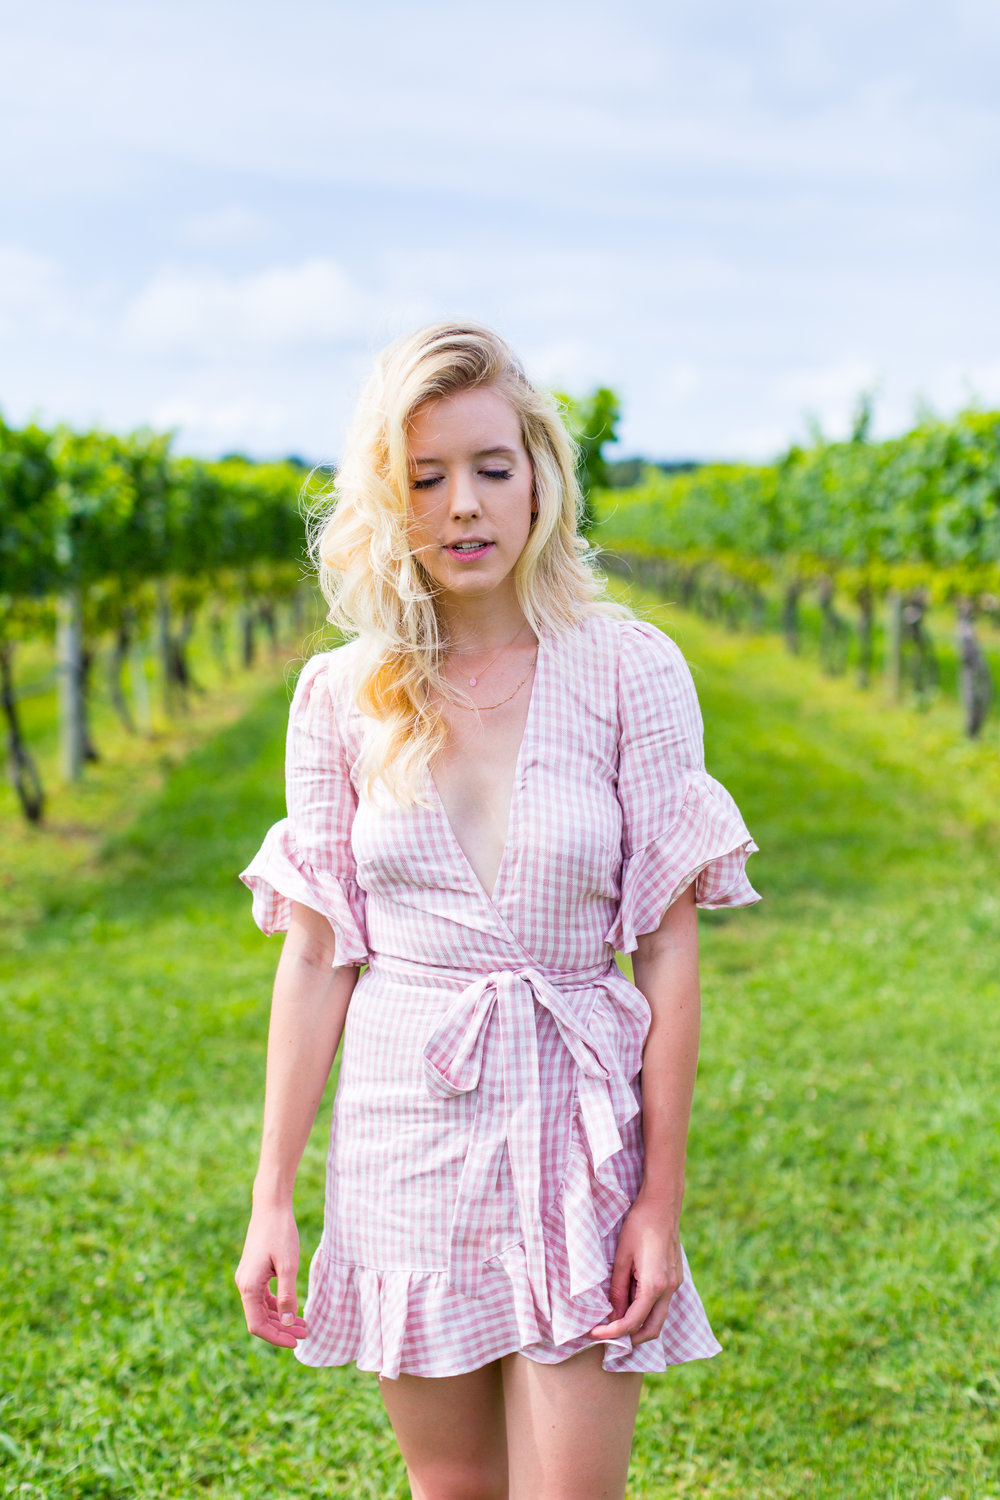 Summer Fashion Hamptons Event Pink Gingham Dress-2.jpg